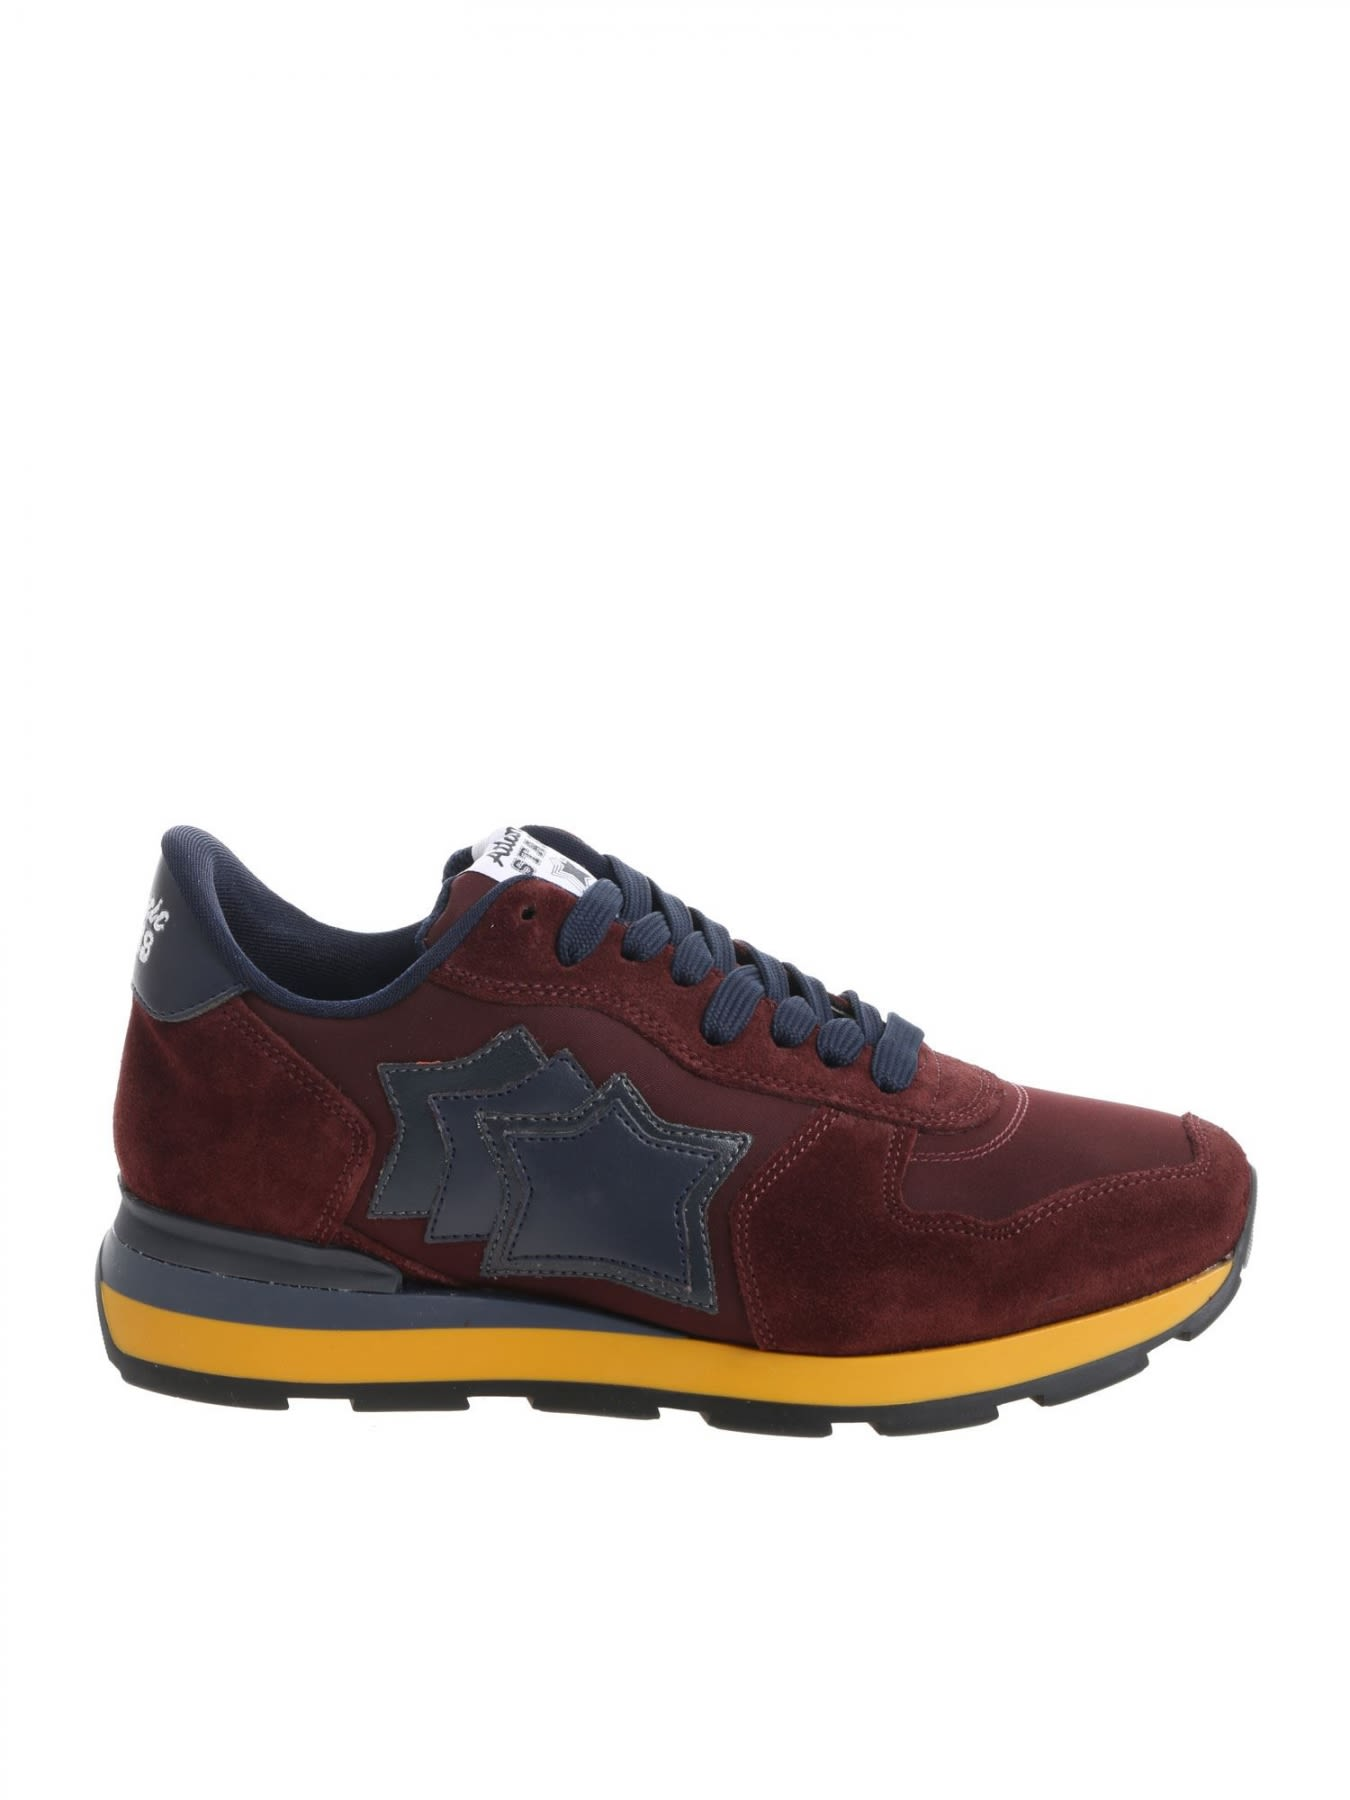 Suede Sneakers Antares Bcn 04ny